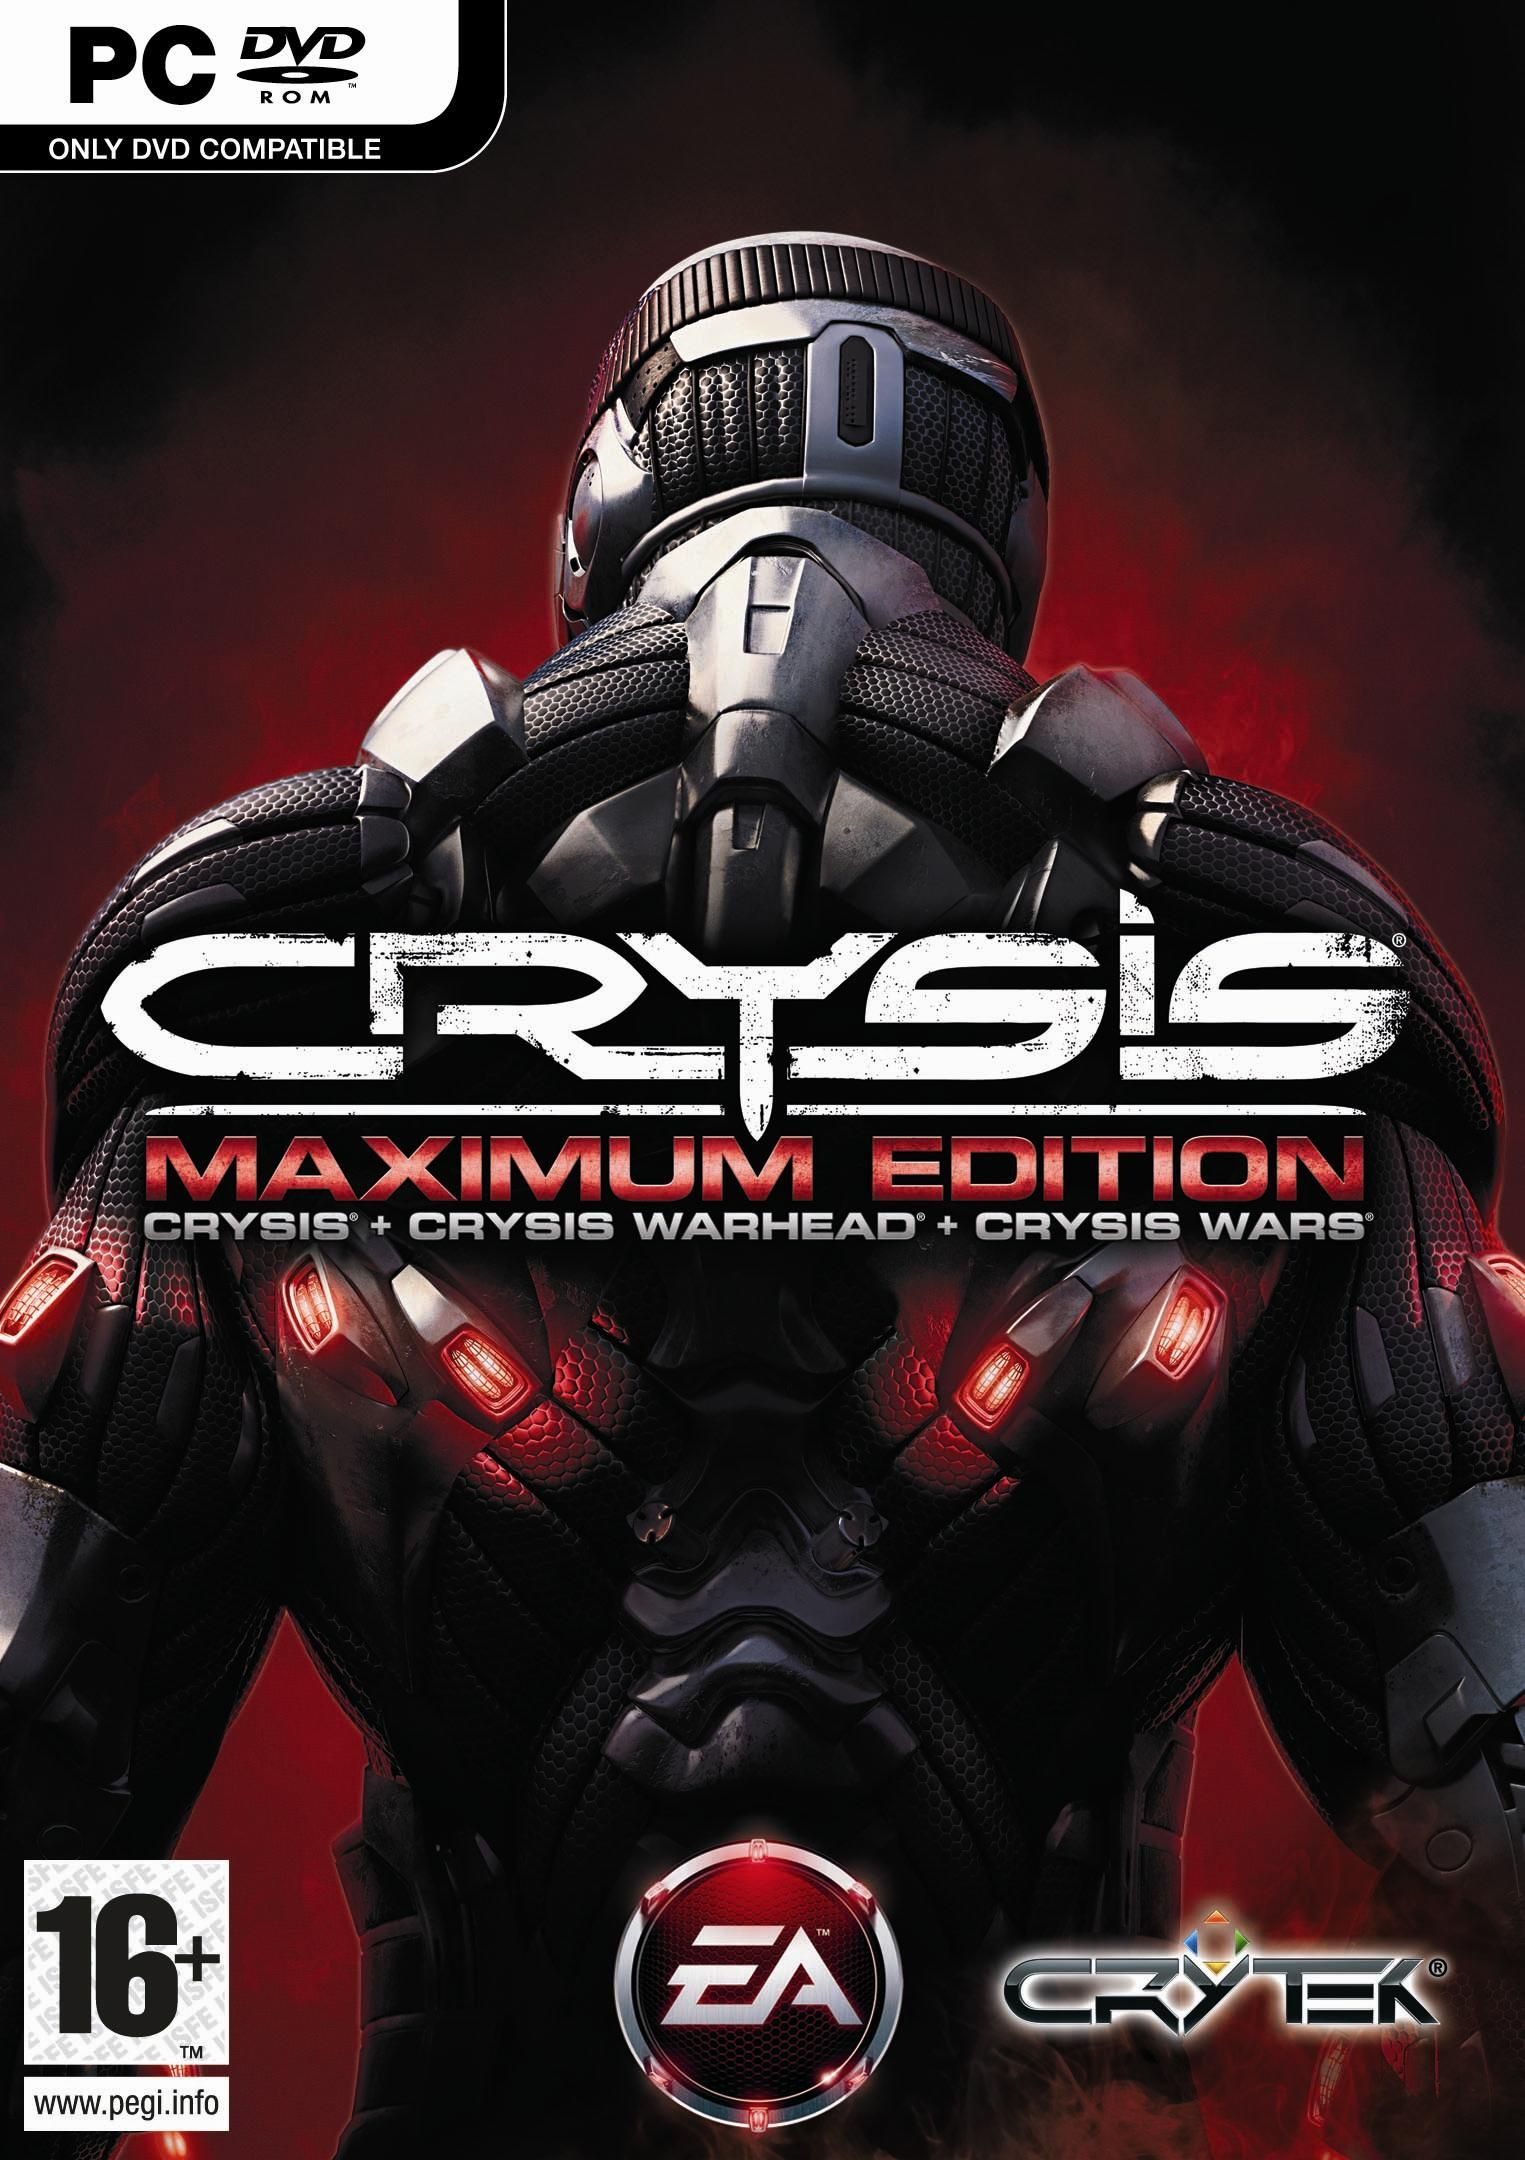 Crysis Maximum Edition Xbox games, Ea games, Video game